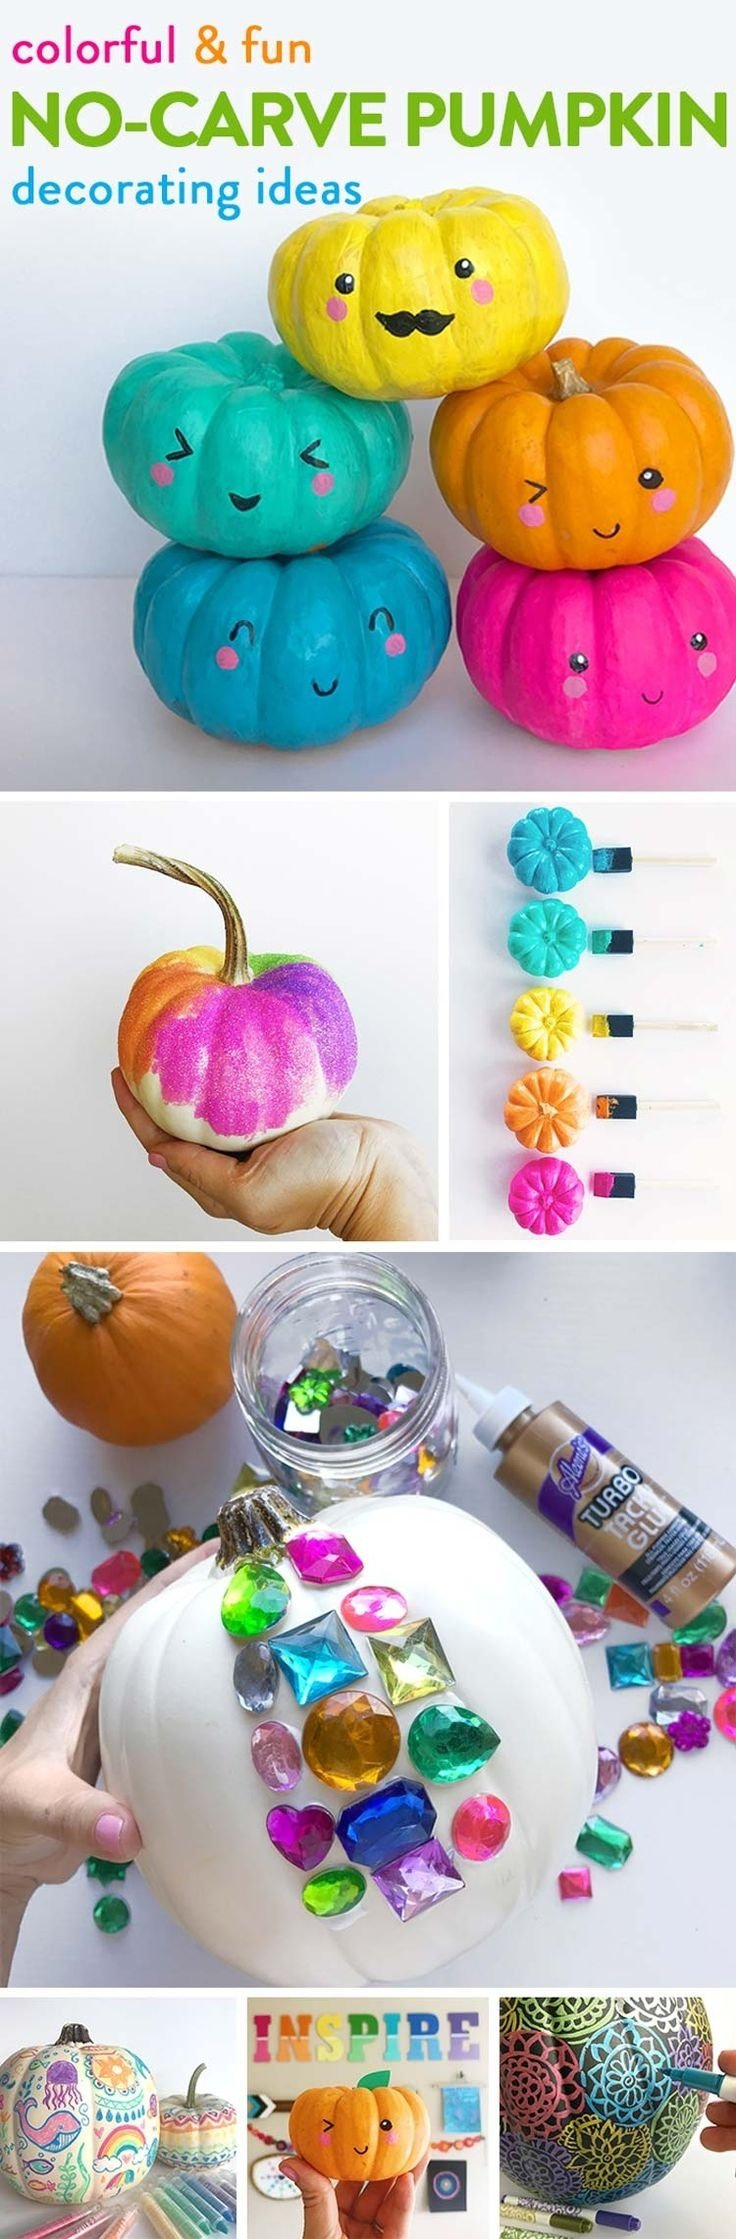 10 Most Recommended Pumpkin Decorating Ideas For Kids 1602 best spook tacular halloween ideas images on pinterest crafts 2020